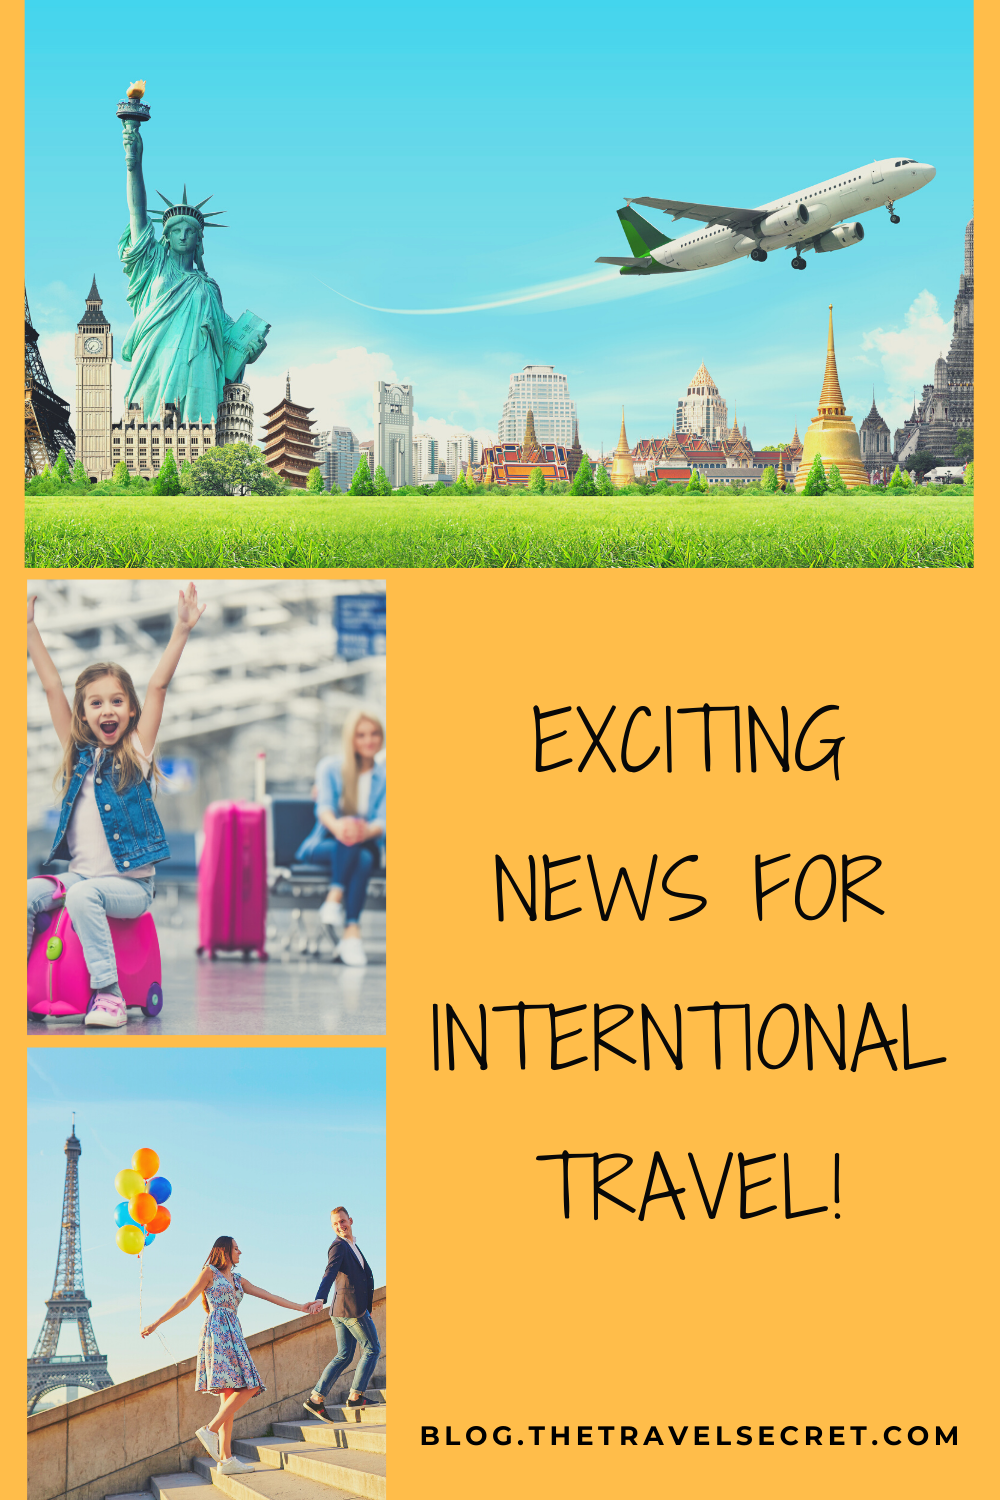 Exciting News for International Travel